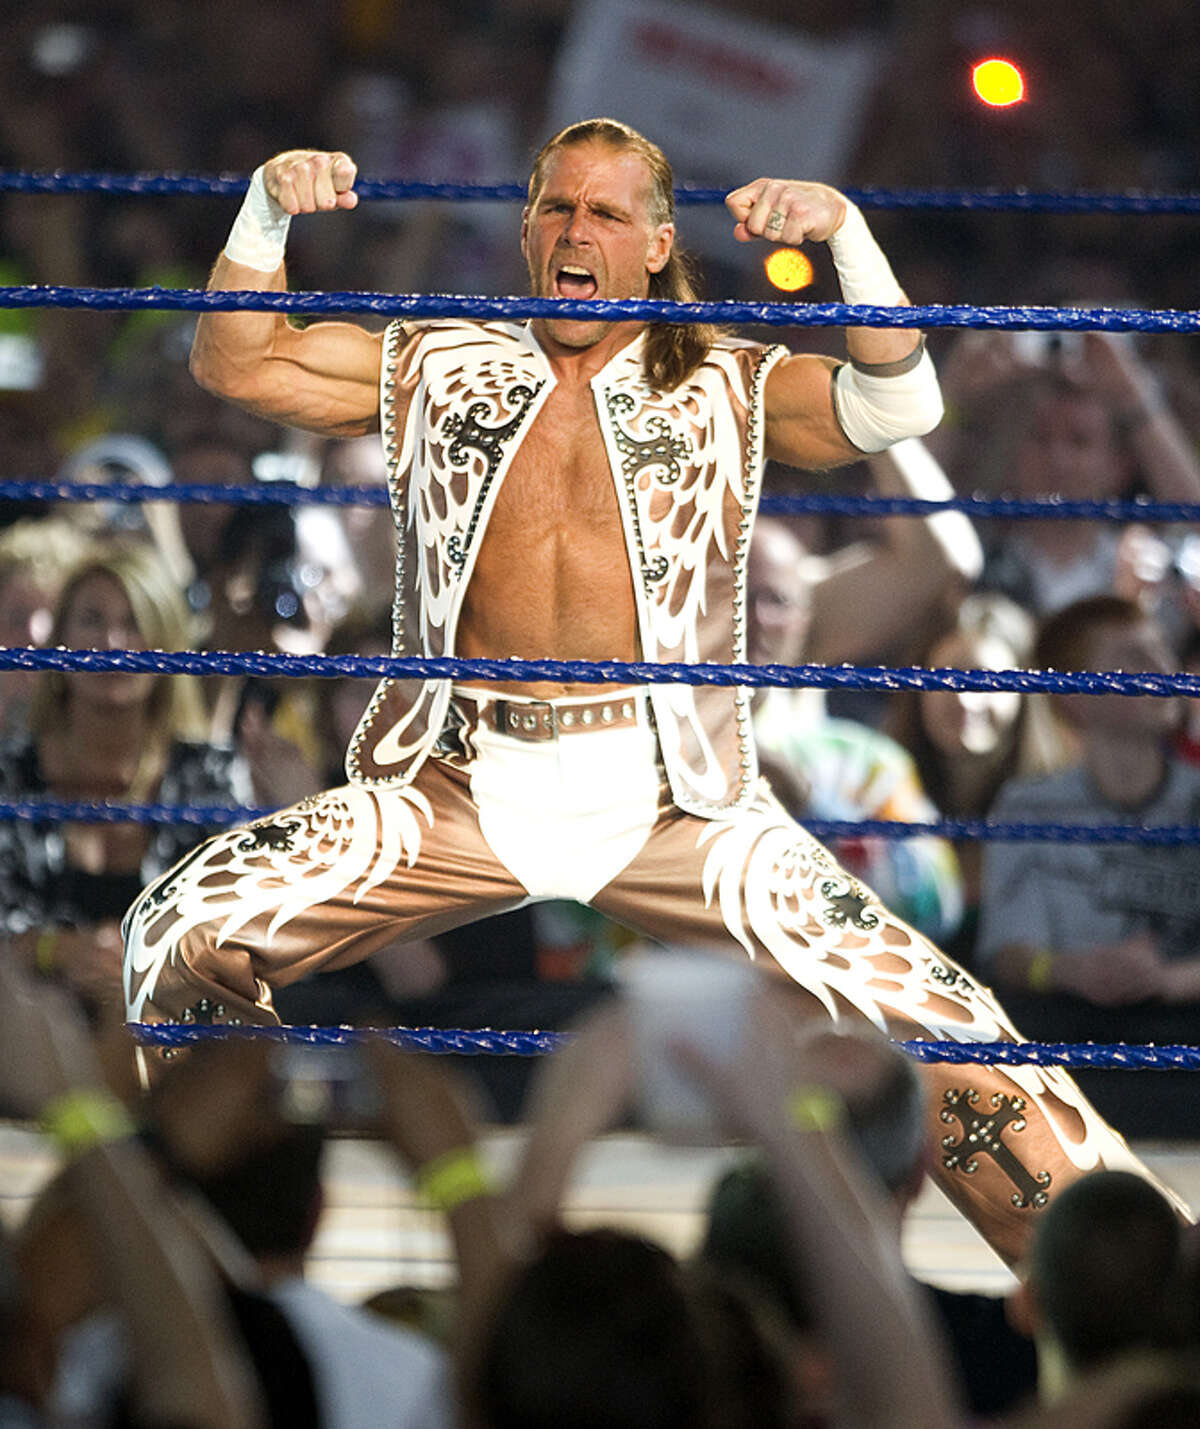 Did you know? WWE wrestler Shawn Michaels and country crooner both went to the same Texas university. Find out where in Texas they and other entertainers, sports stars and politicians went to school ...